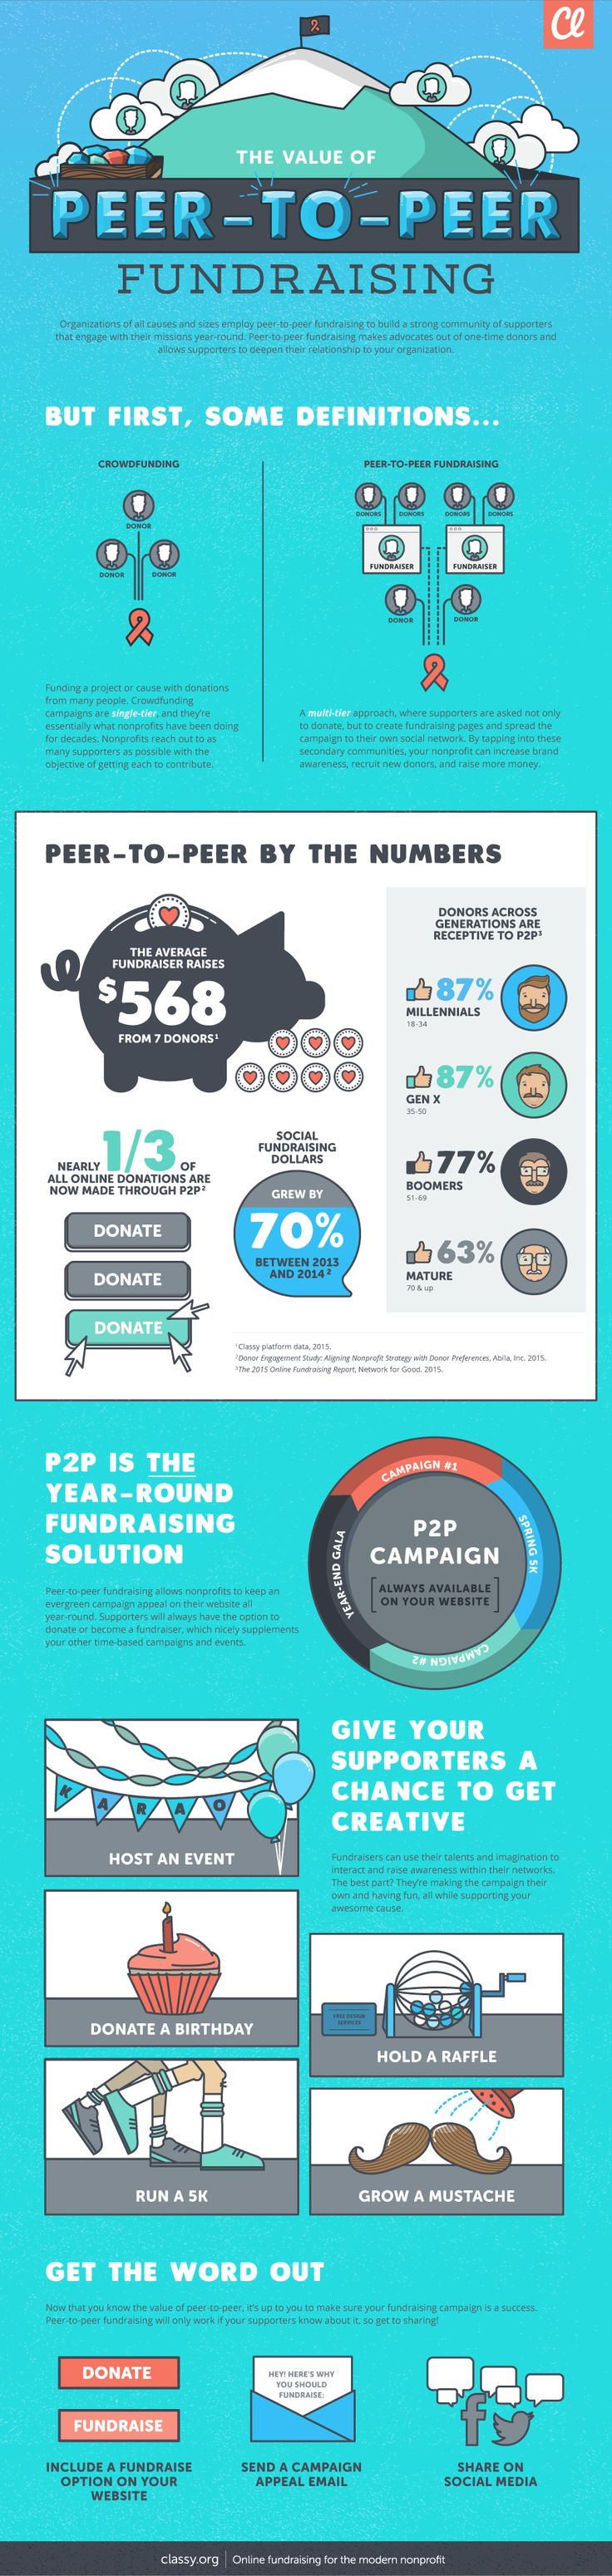 In this infographic, you'll see how peer-to-peer fundraising engages all kinds of supporters, and what that can mean for the earning potential of your organization.